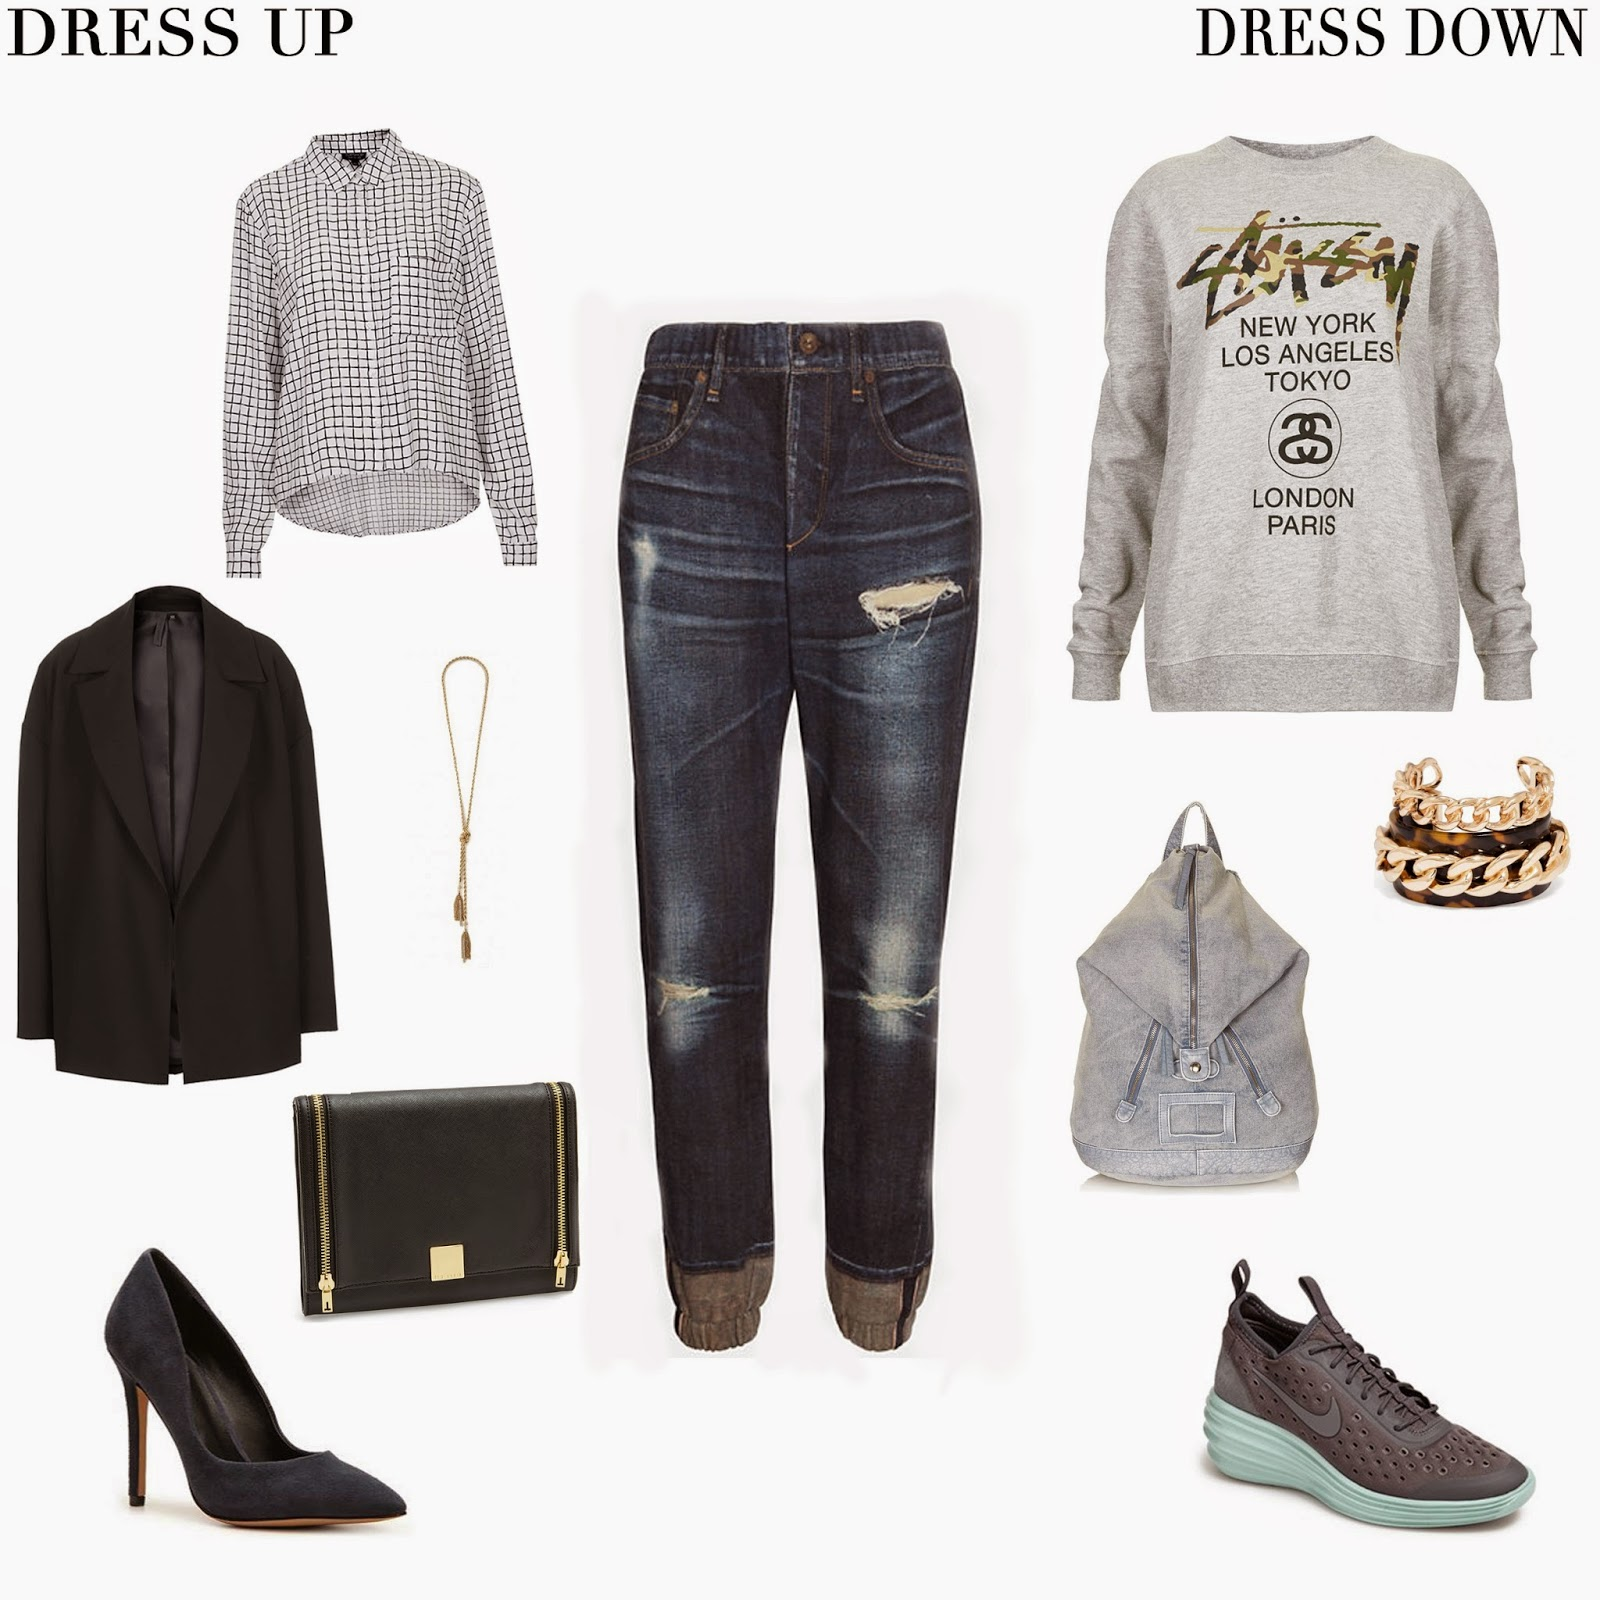 Edie's Closet, Rag & Bone - Dress Up/Dress Down